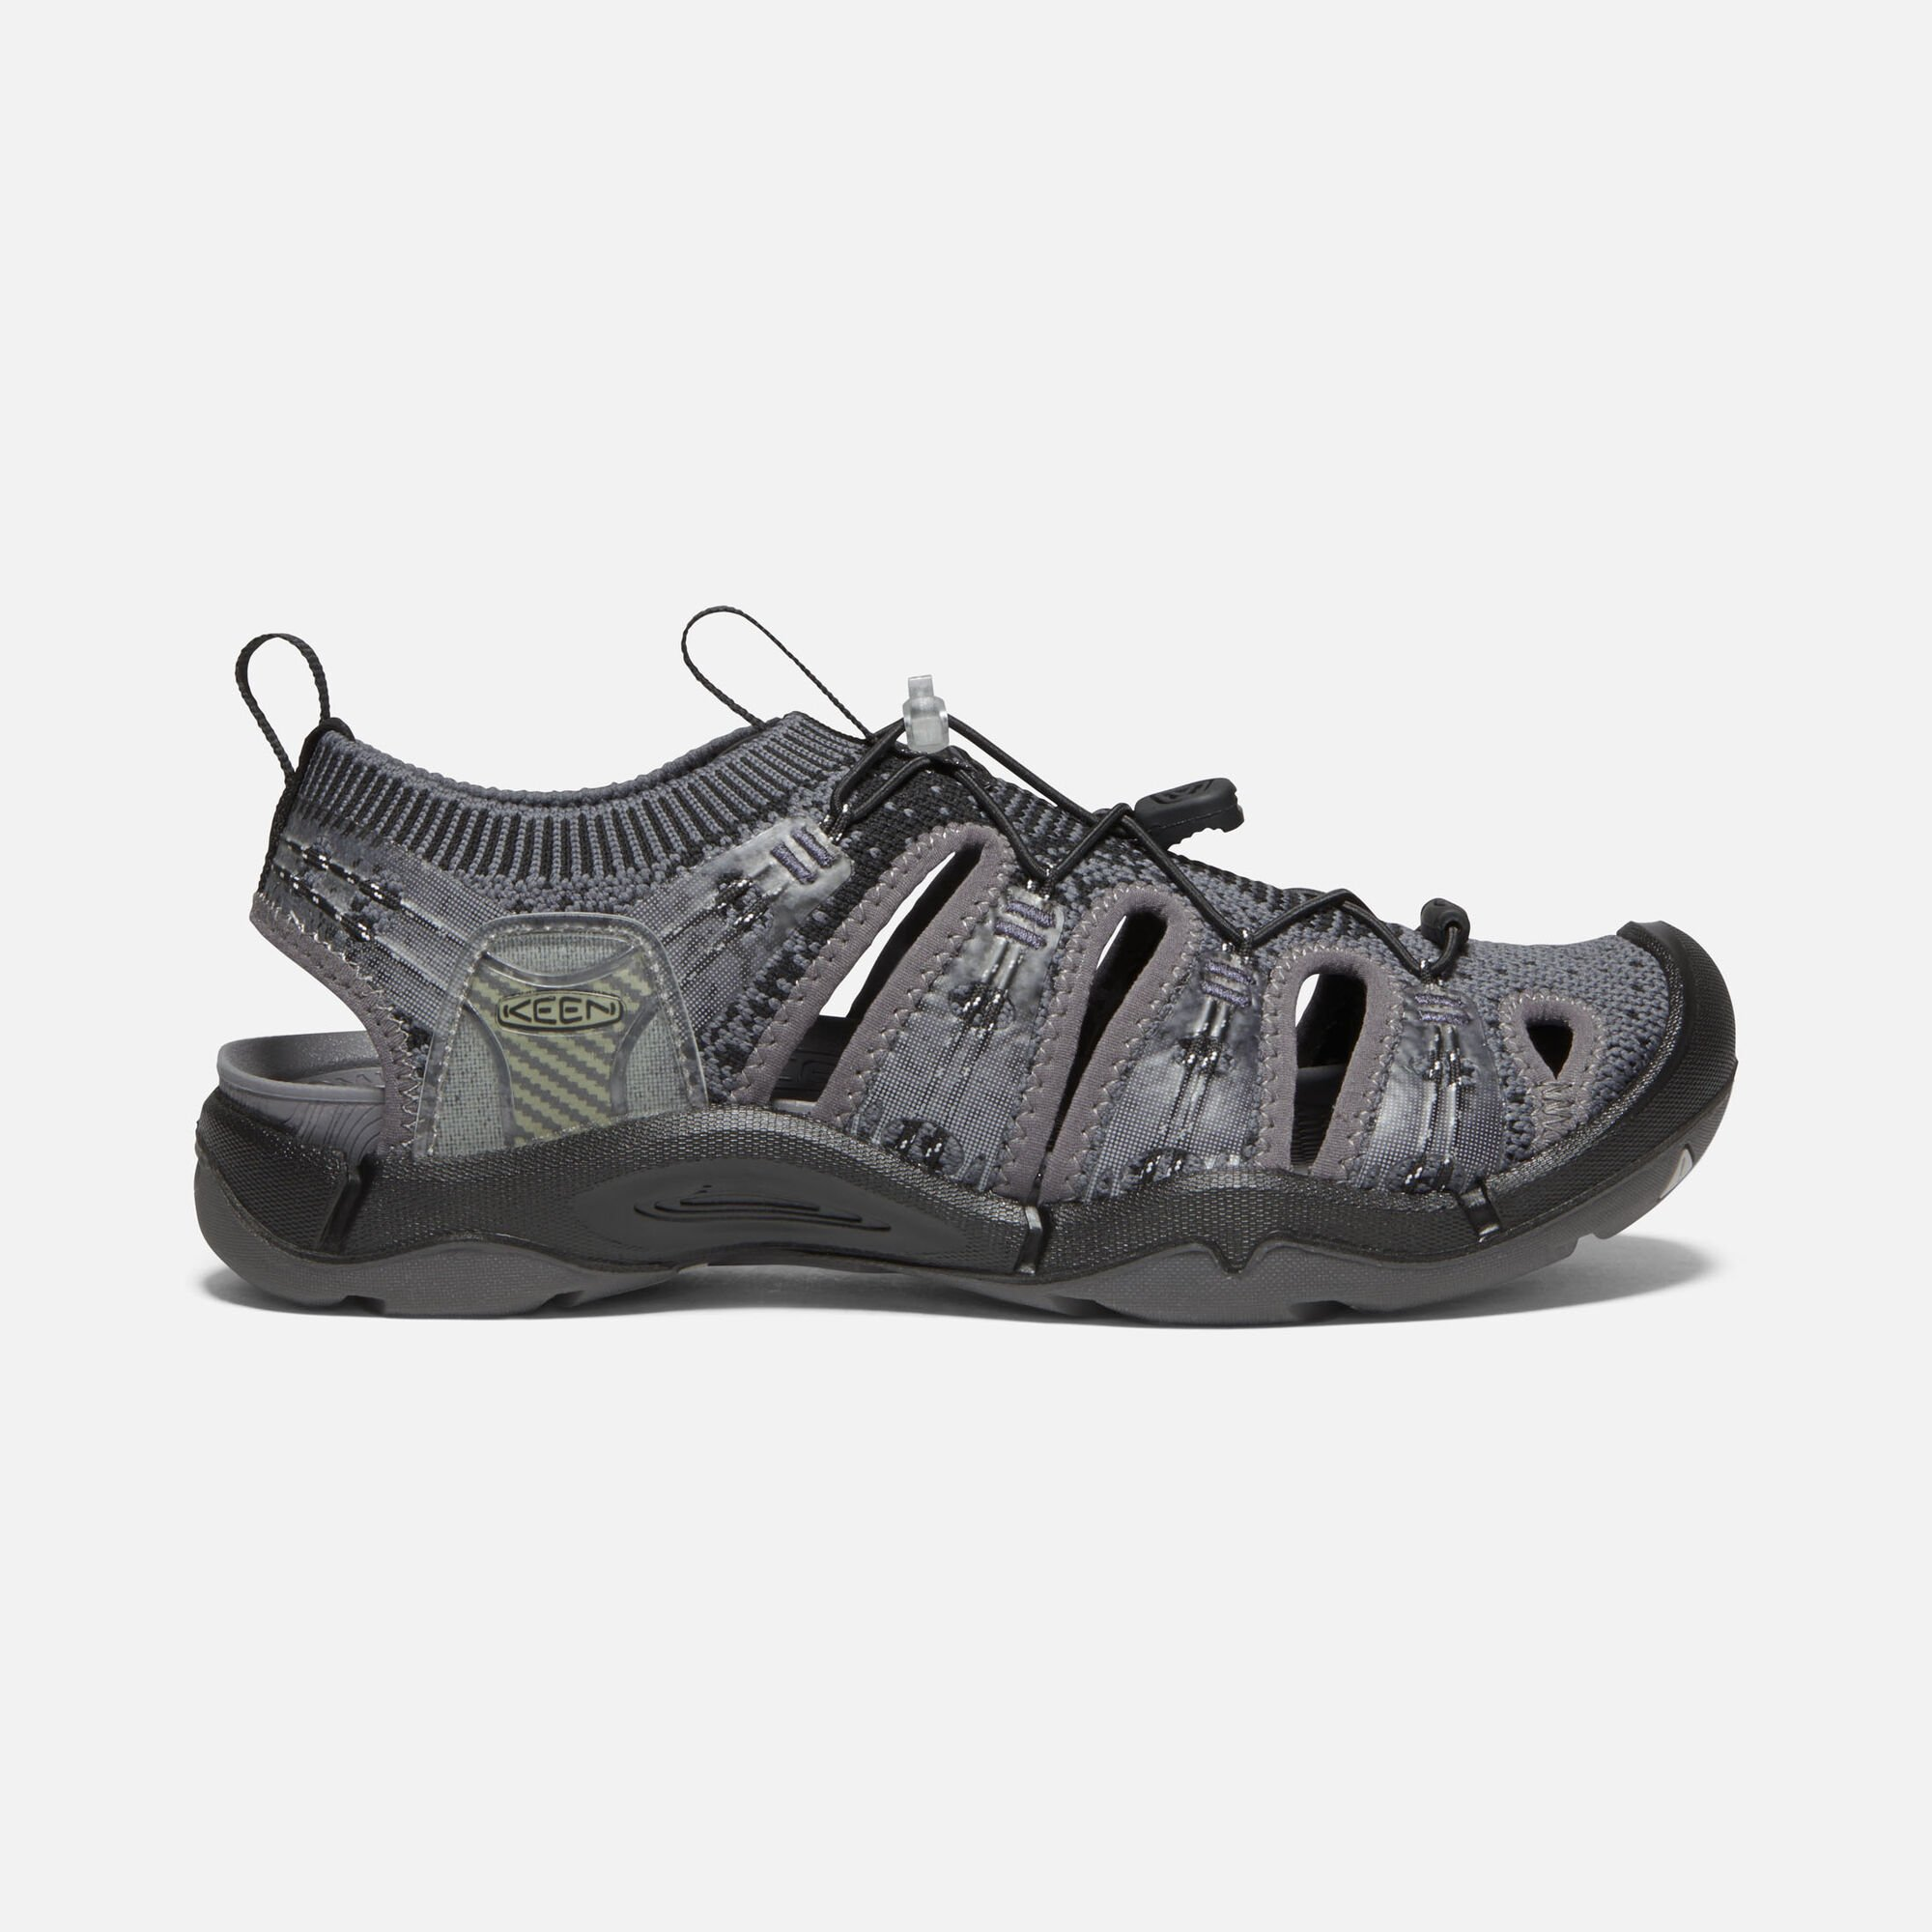 The stinky sandal solution frugal fun for boys and girls.